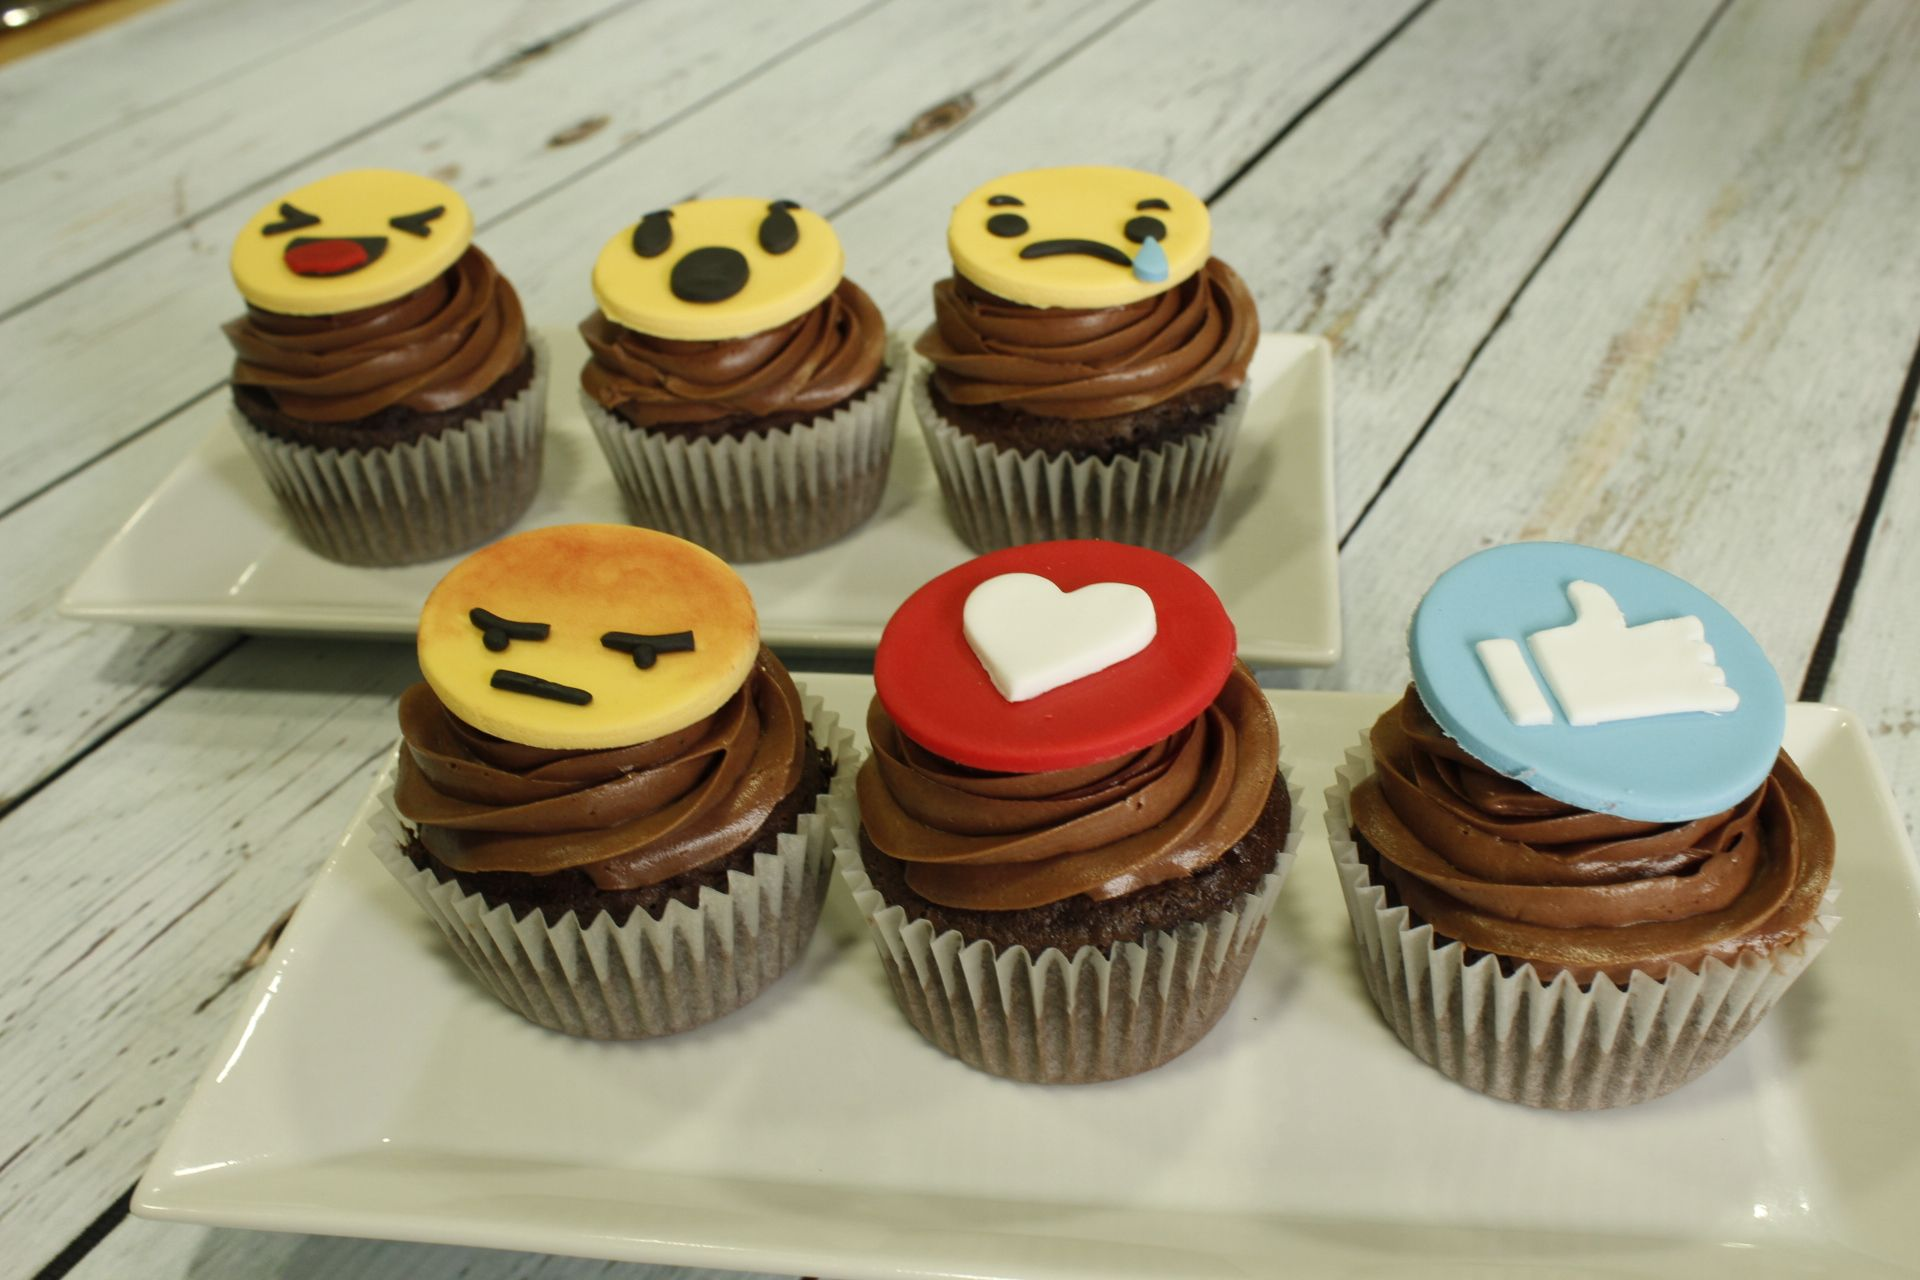 Cursos Galletas Decoradas Madrid Cupcakes Emoticonos De Facebook Tartas De Empresas